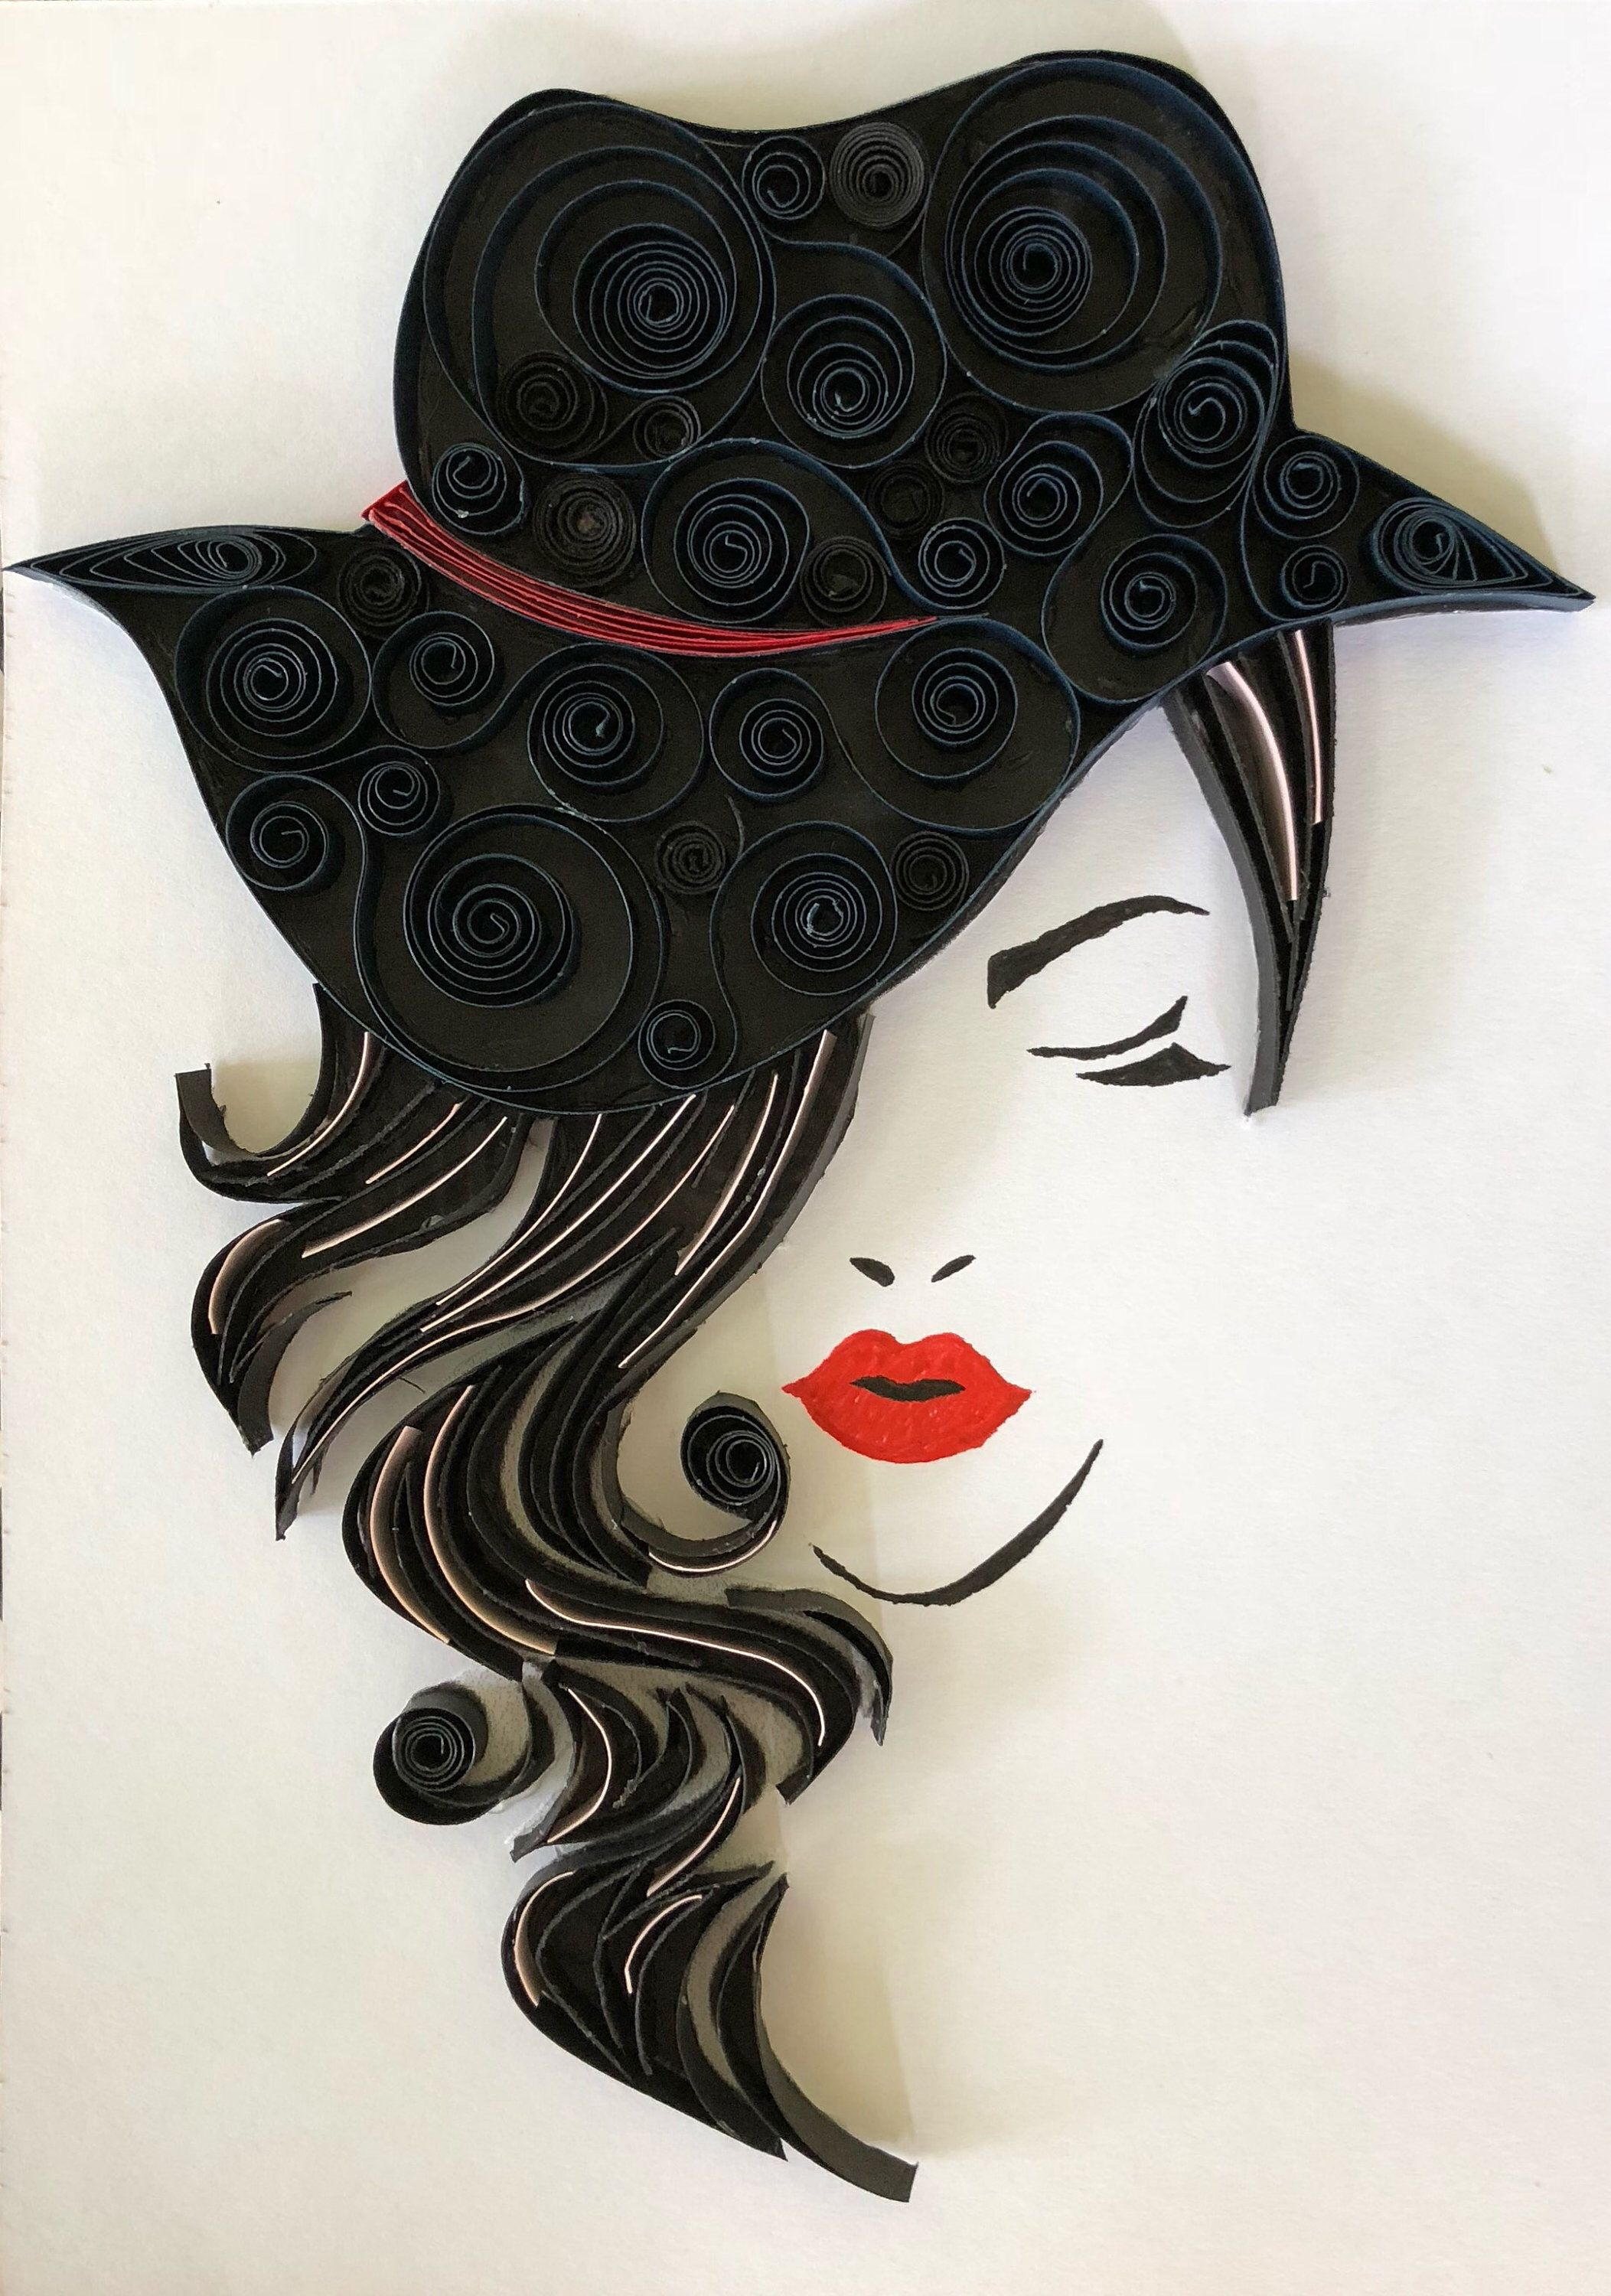 Items similar to Handcrafted Quilling Fashionista - 8 1/2 x 11 on Etsy #mygirl